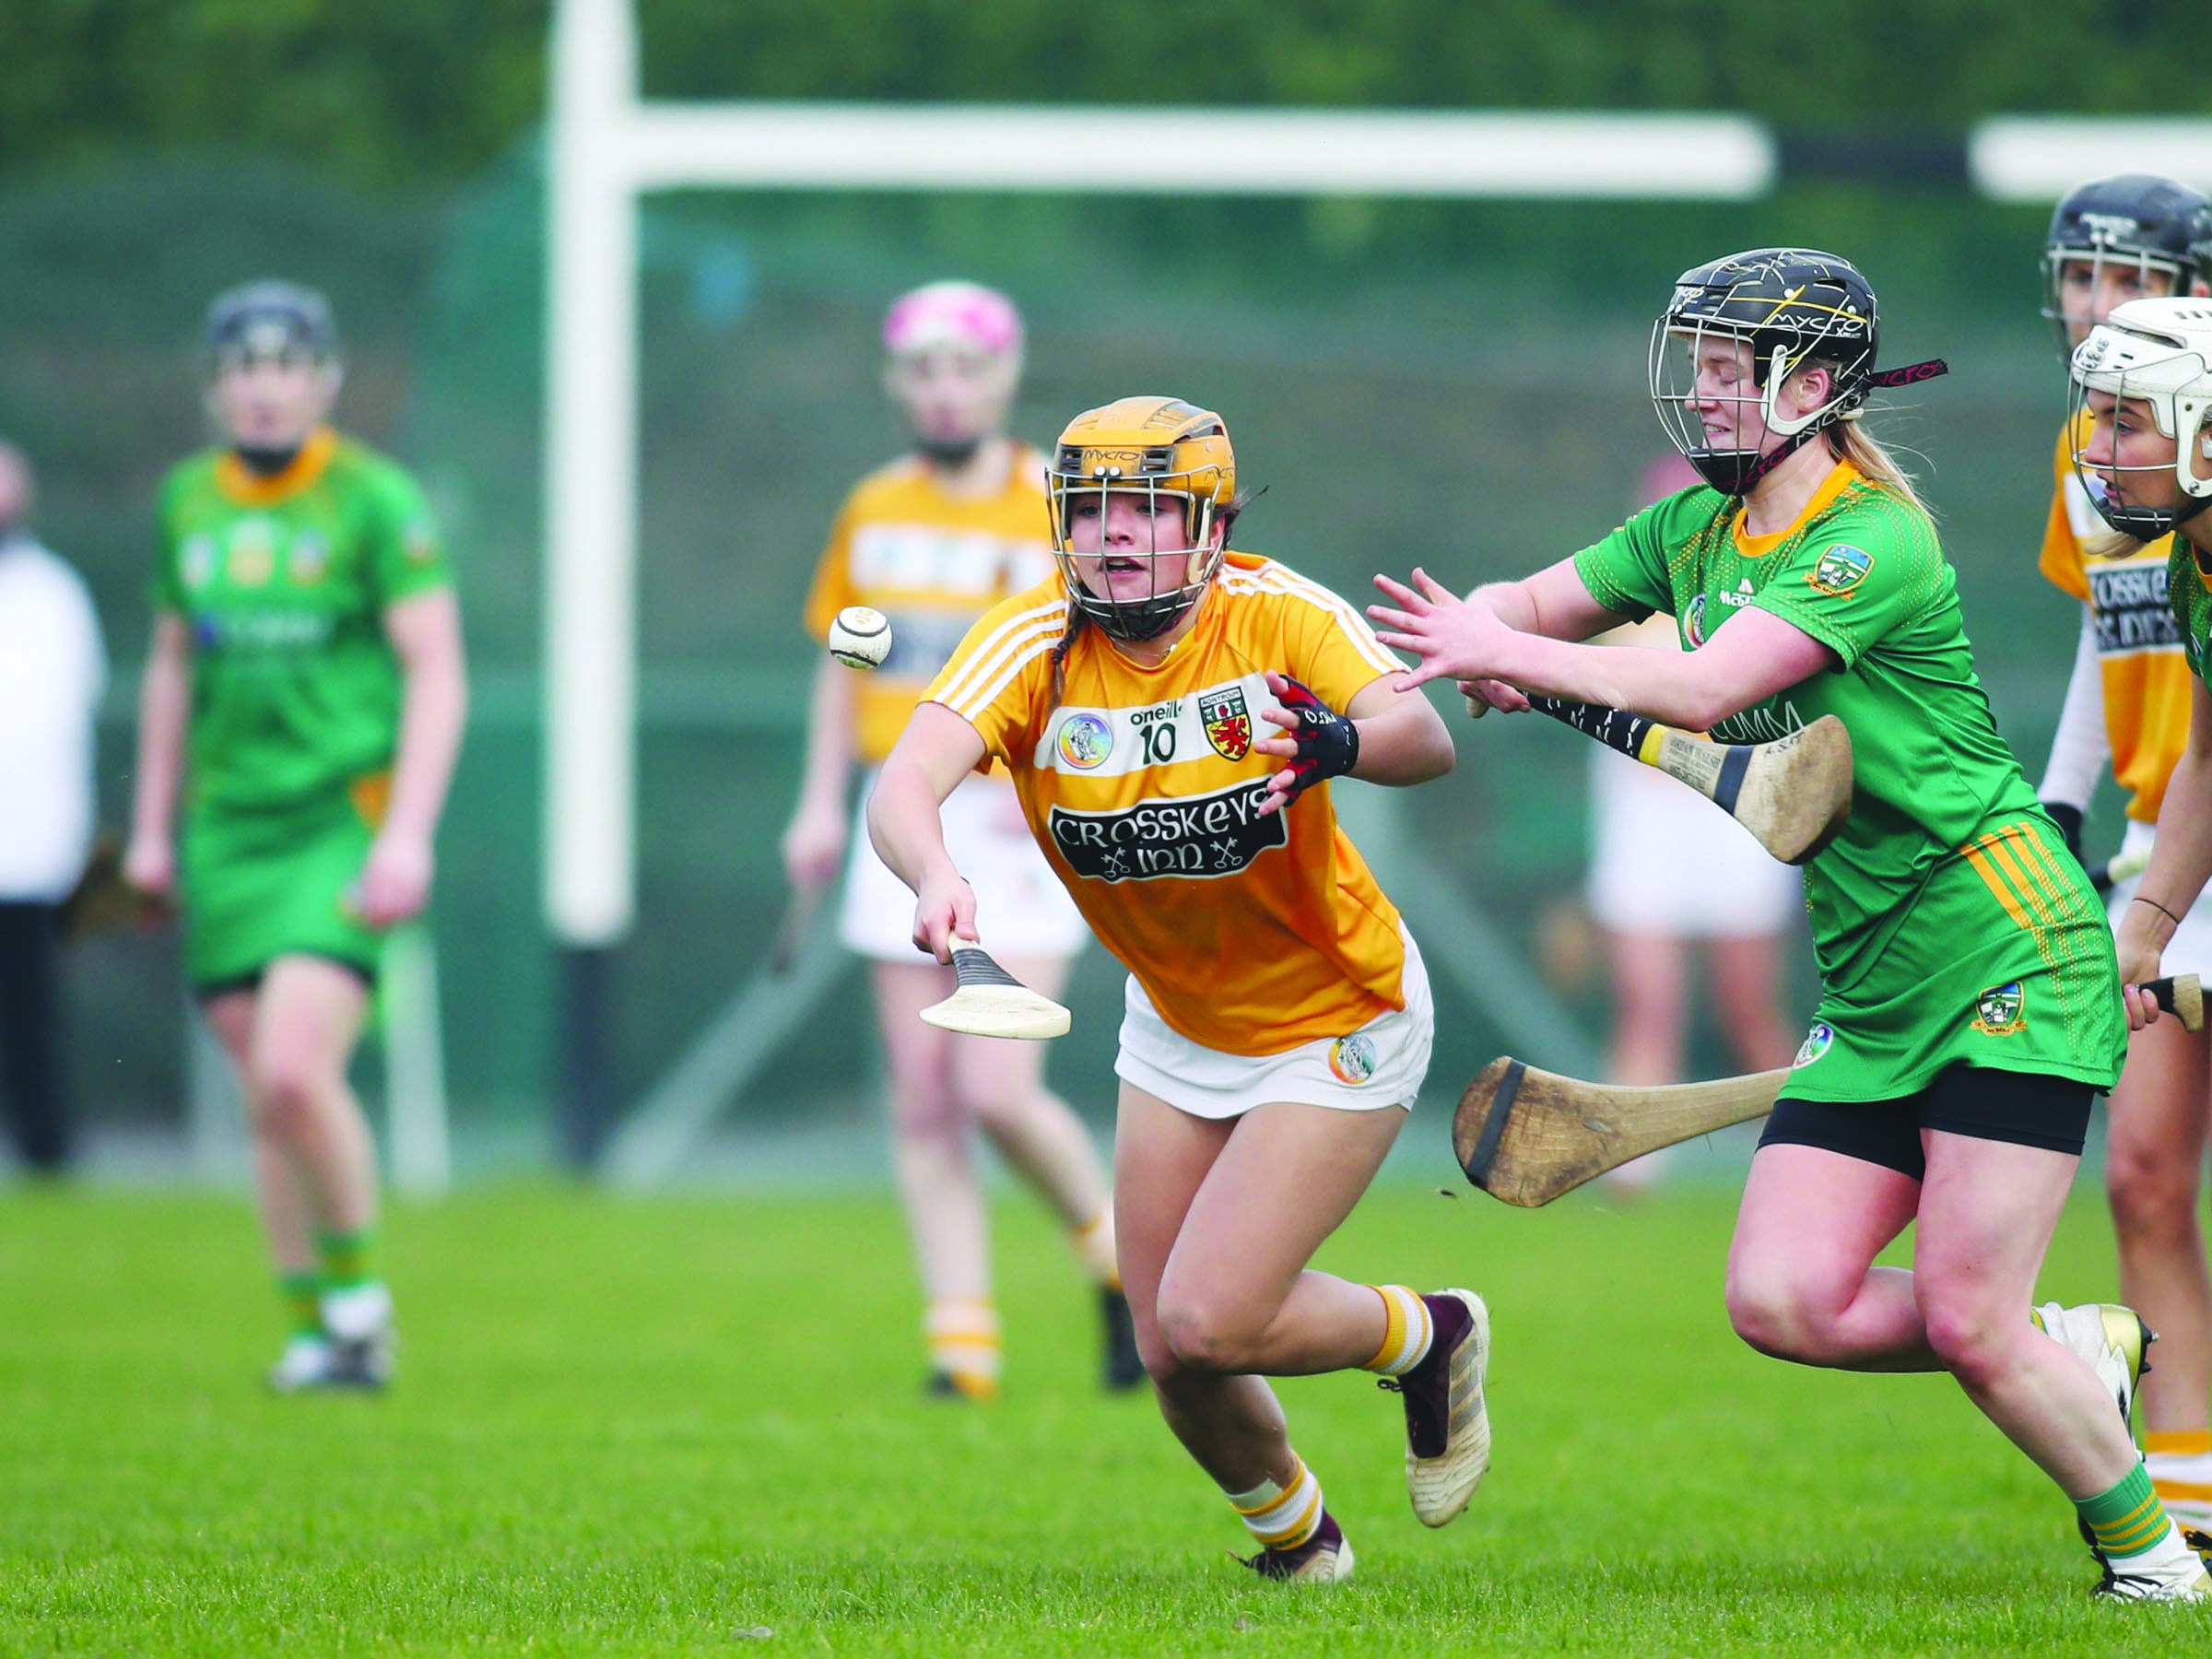 Antrim impressed in their win over Meath